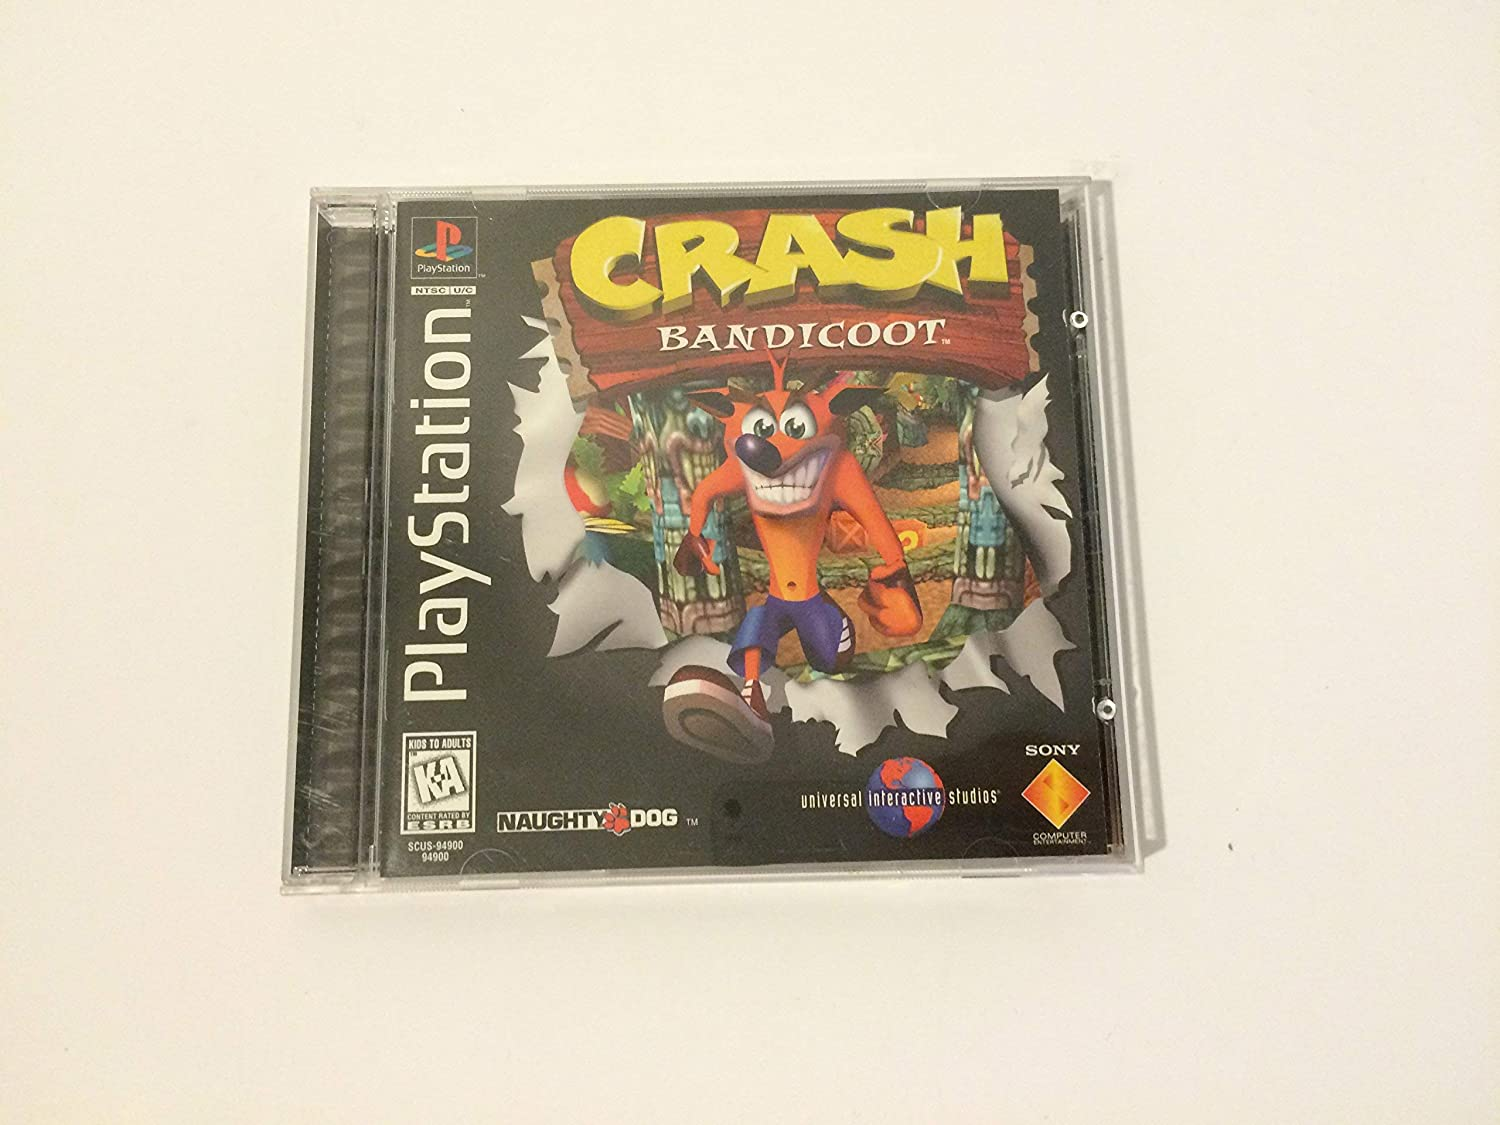 Amazon.com: Crash Bandicoot (Renewed): Video Games